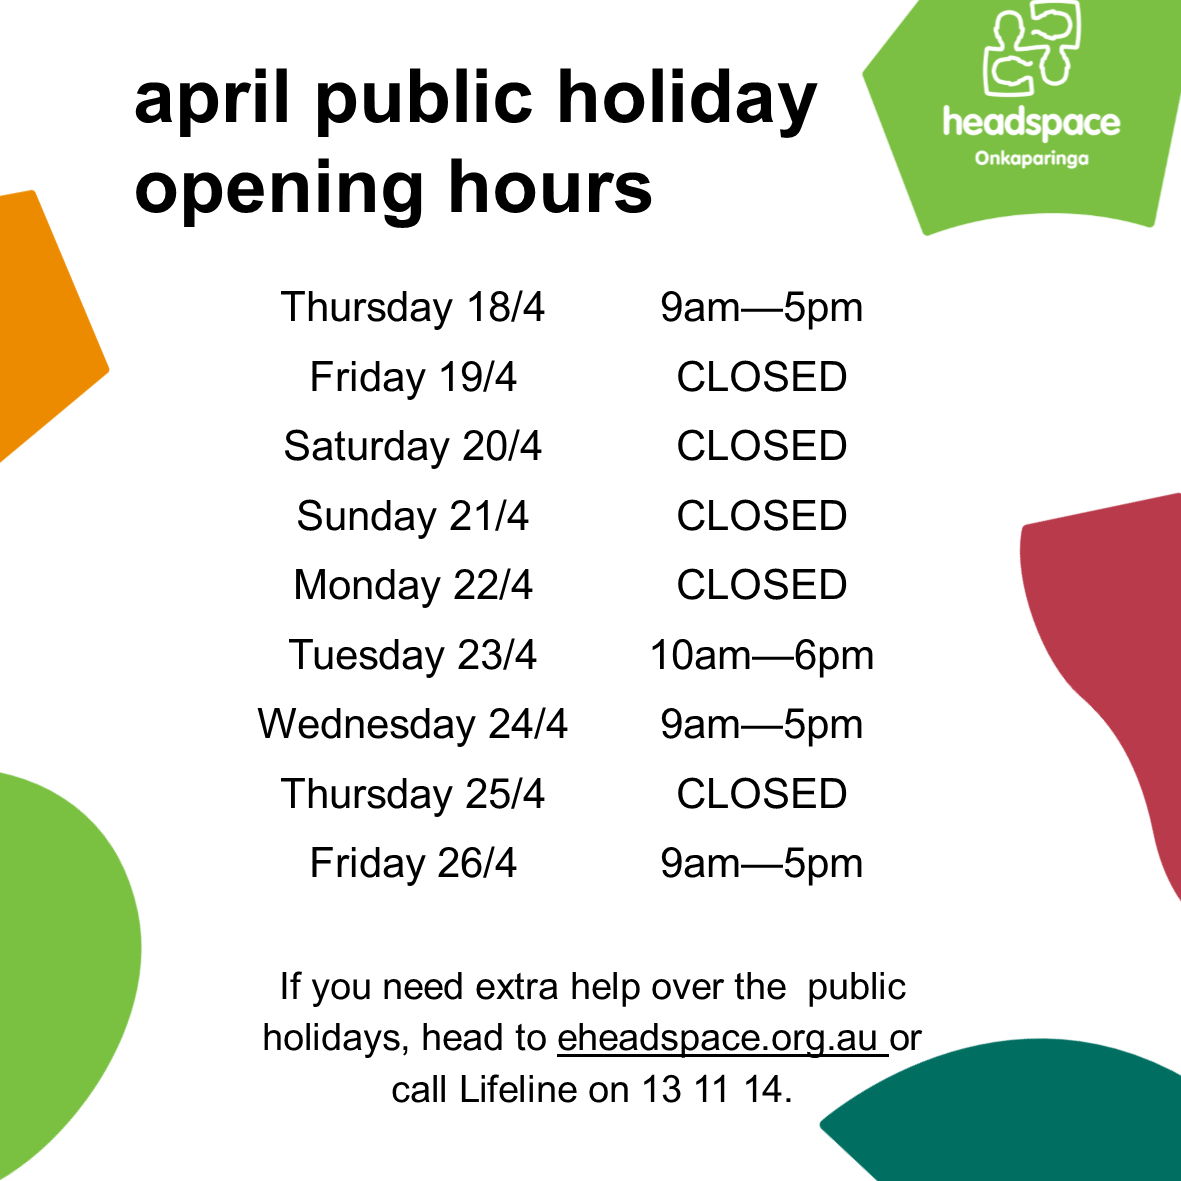 april public holiday hours 2